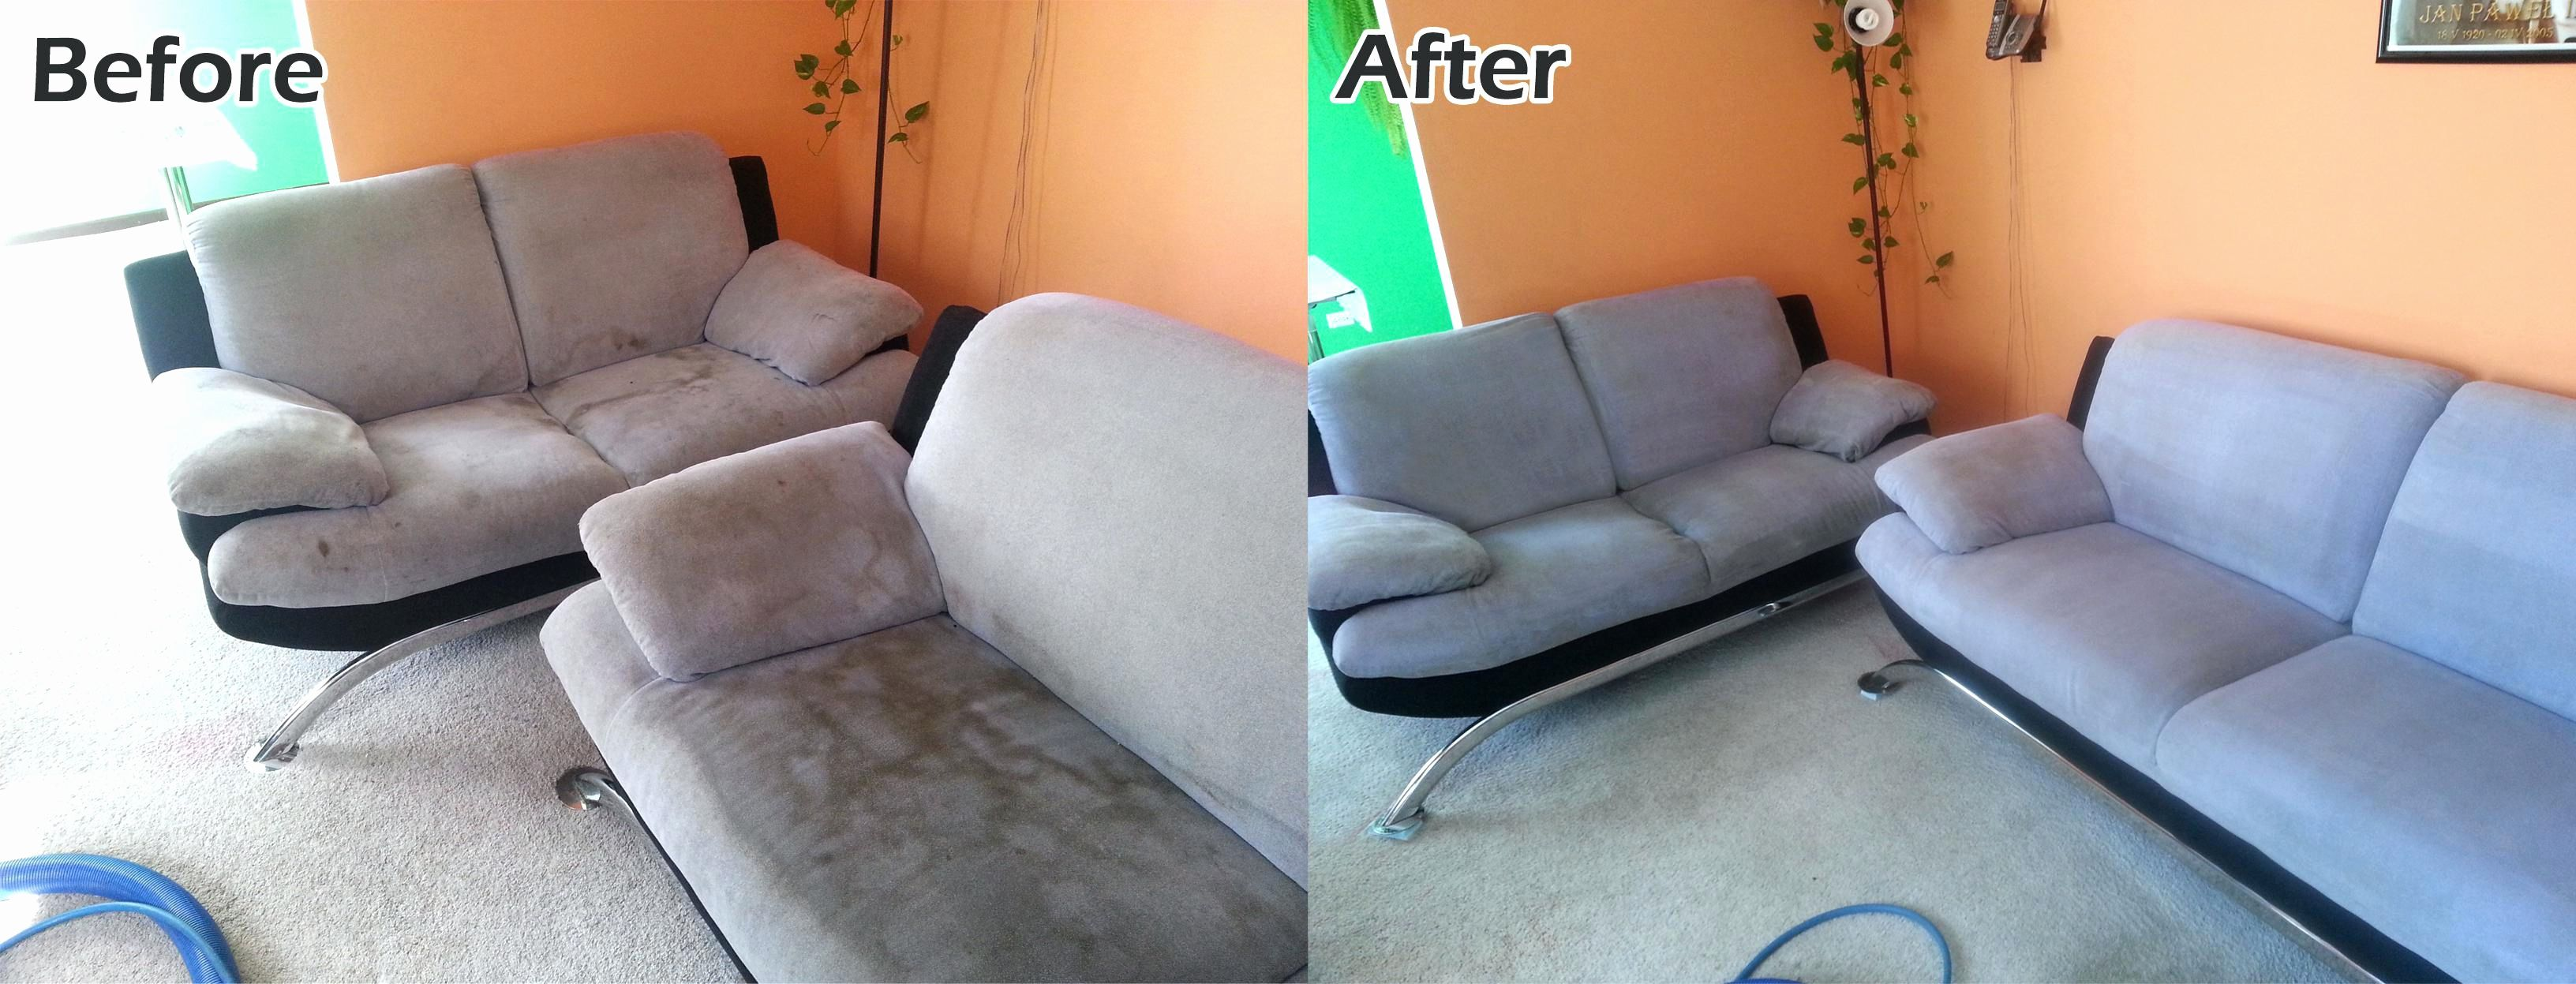 Awesome Cleaning A Microfiber Sofa Cleaning A Microfiber Sofa Awesome Best Way To Clean Furniture Fabric Be Fabric Sofa Cover Clean Sofa Sofa Cleaning Services